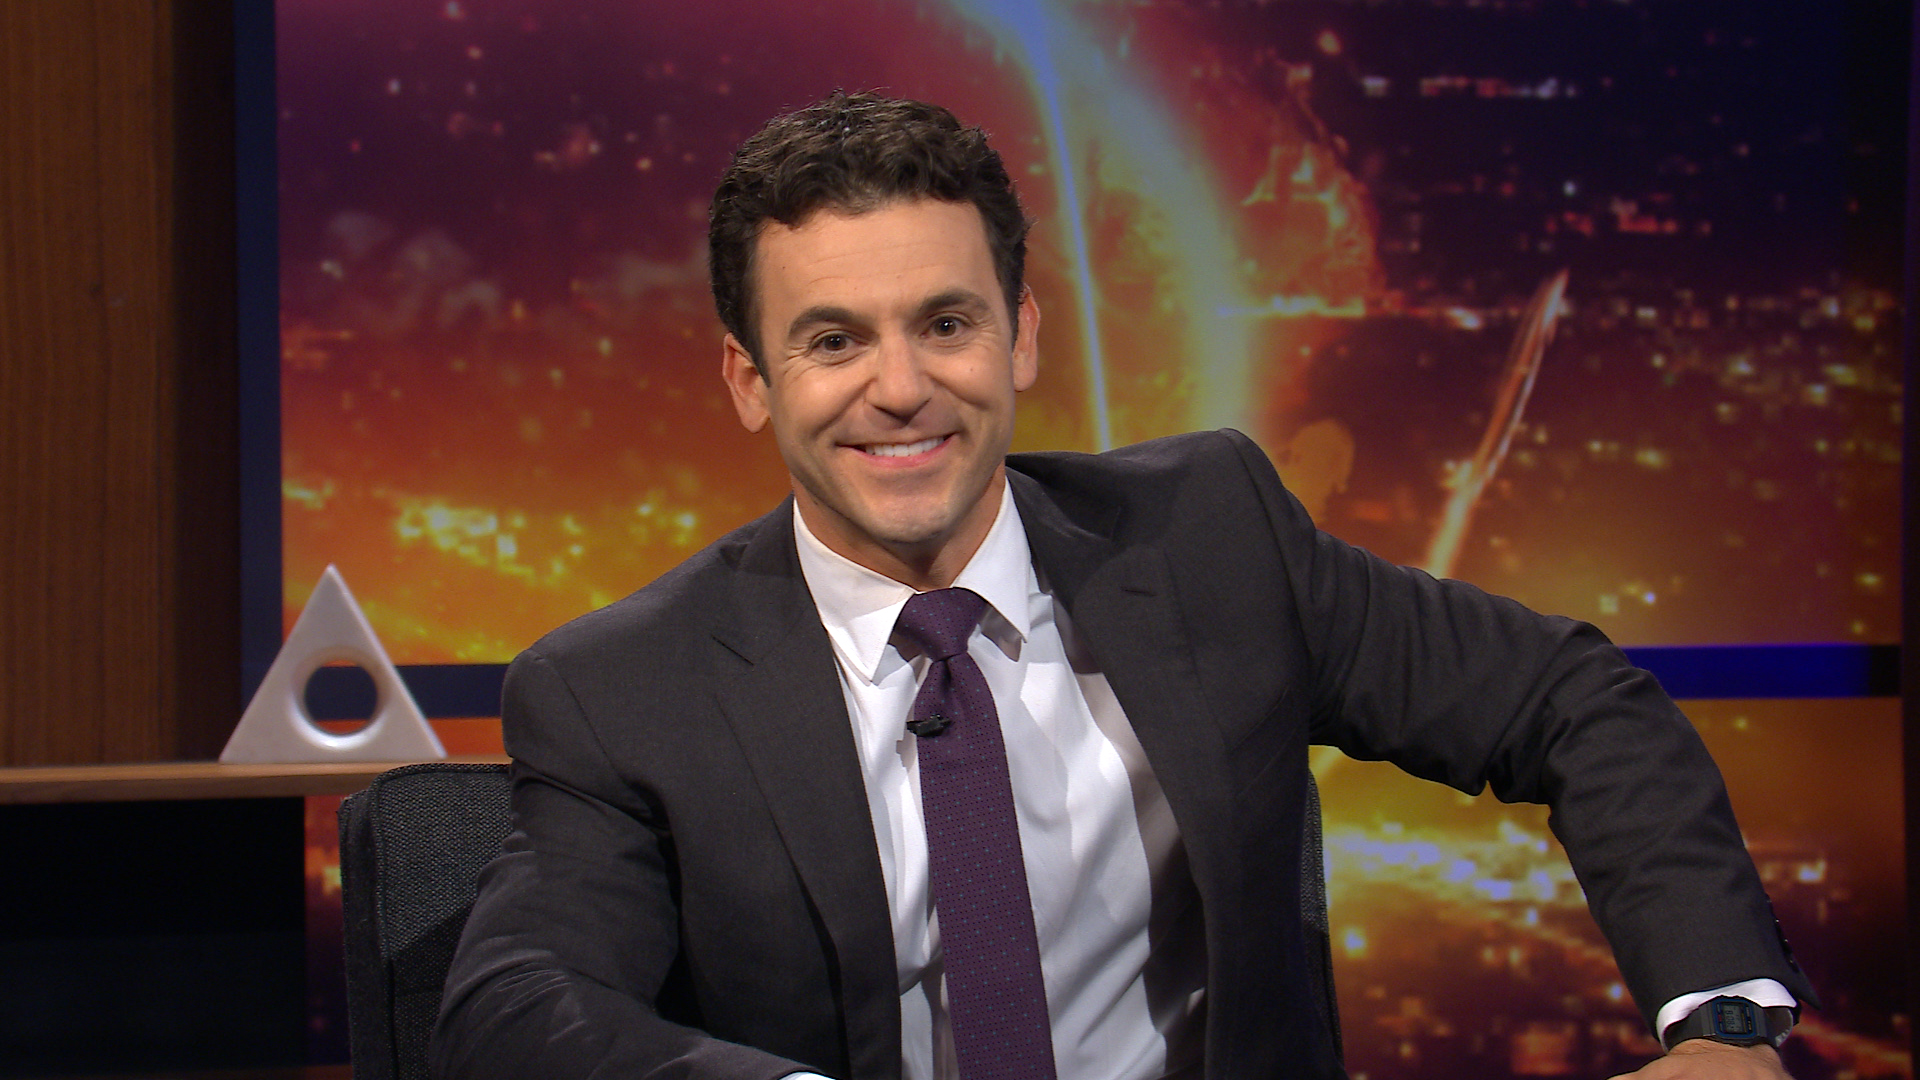 Fred Savage in WHAT JUST HAPPENED??! WITH FRED SAVAGE on FOX. ©2019 Fox Media LLC CR: FOX